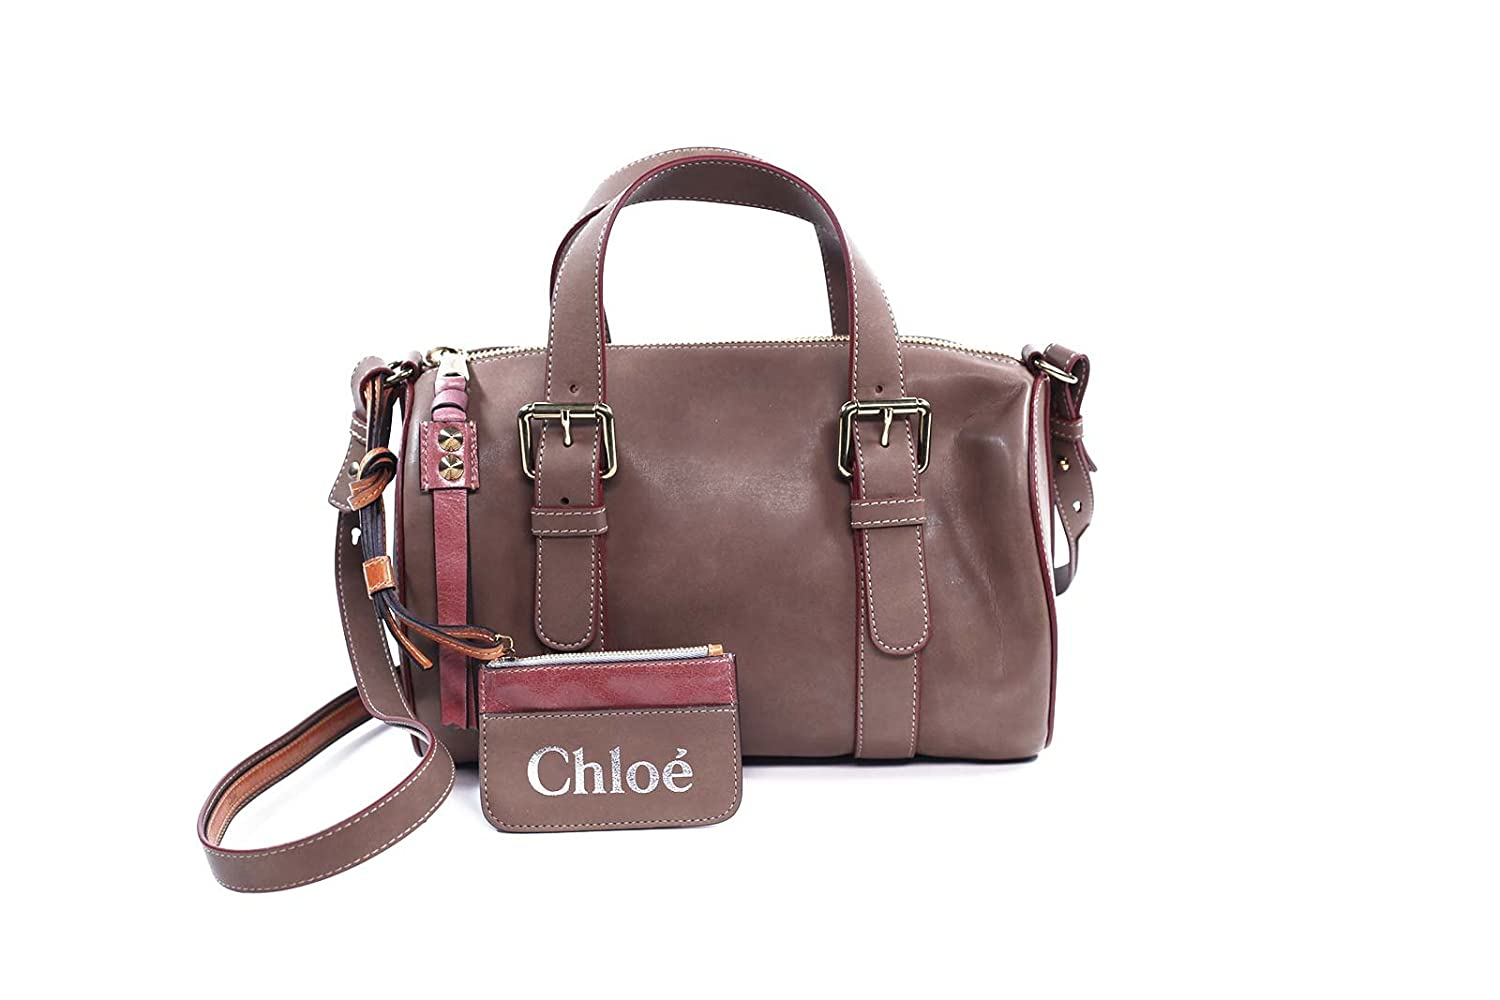 Chloe Handbags Sam Bowling Duffle Satchel In Taupe 3S0099-311